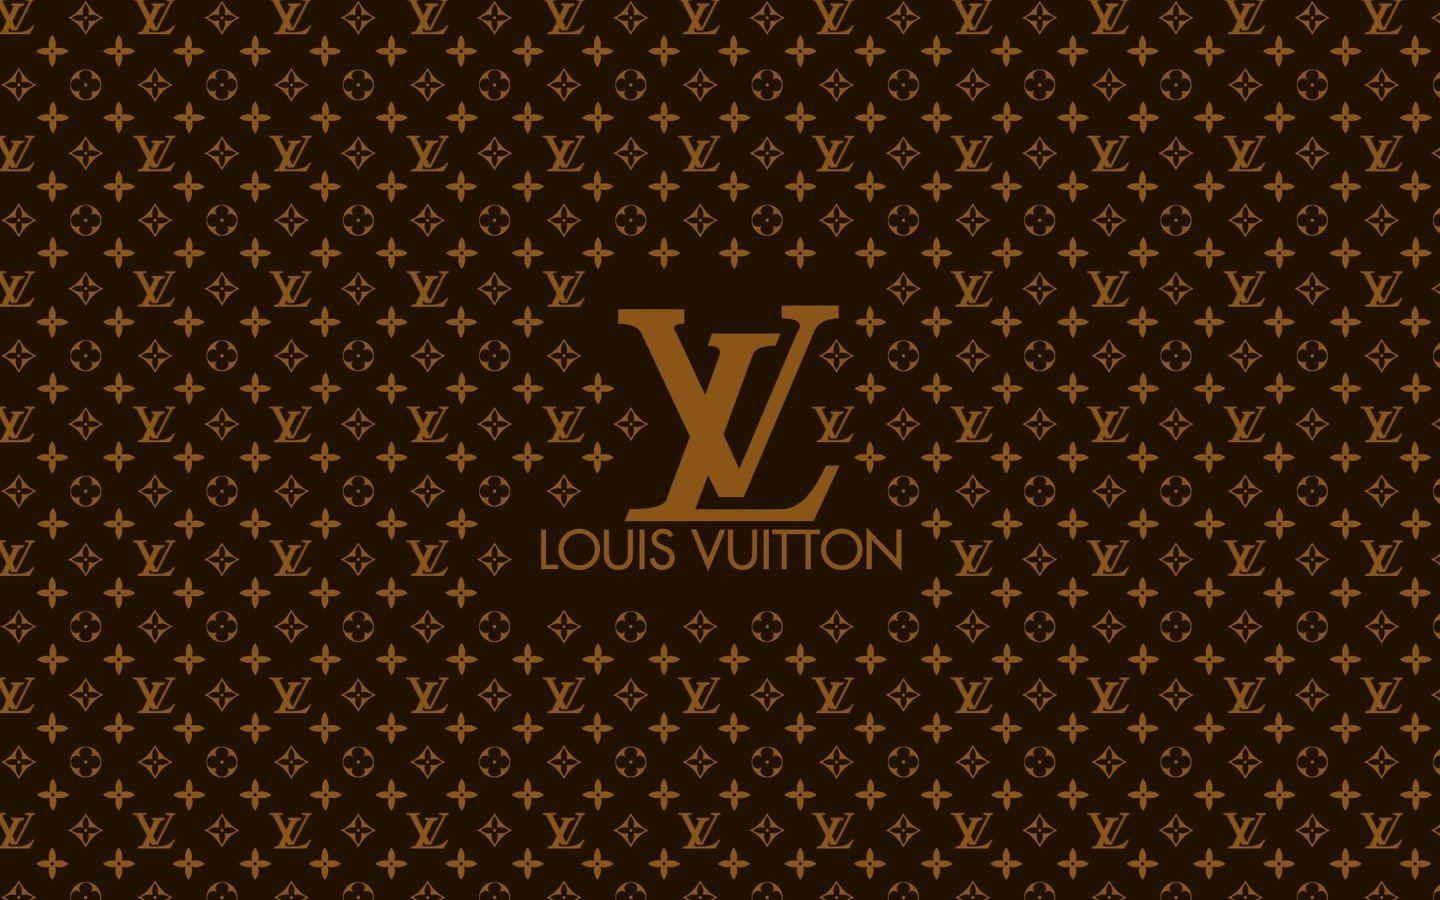 Louis Vuitton Logo Wallpaper Wallpapersafari